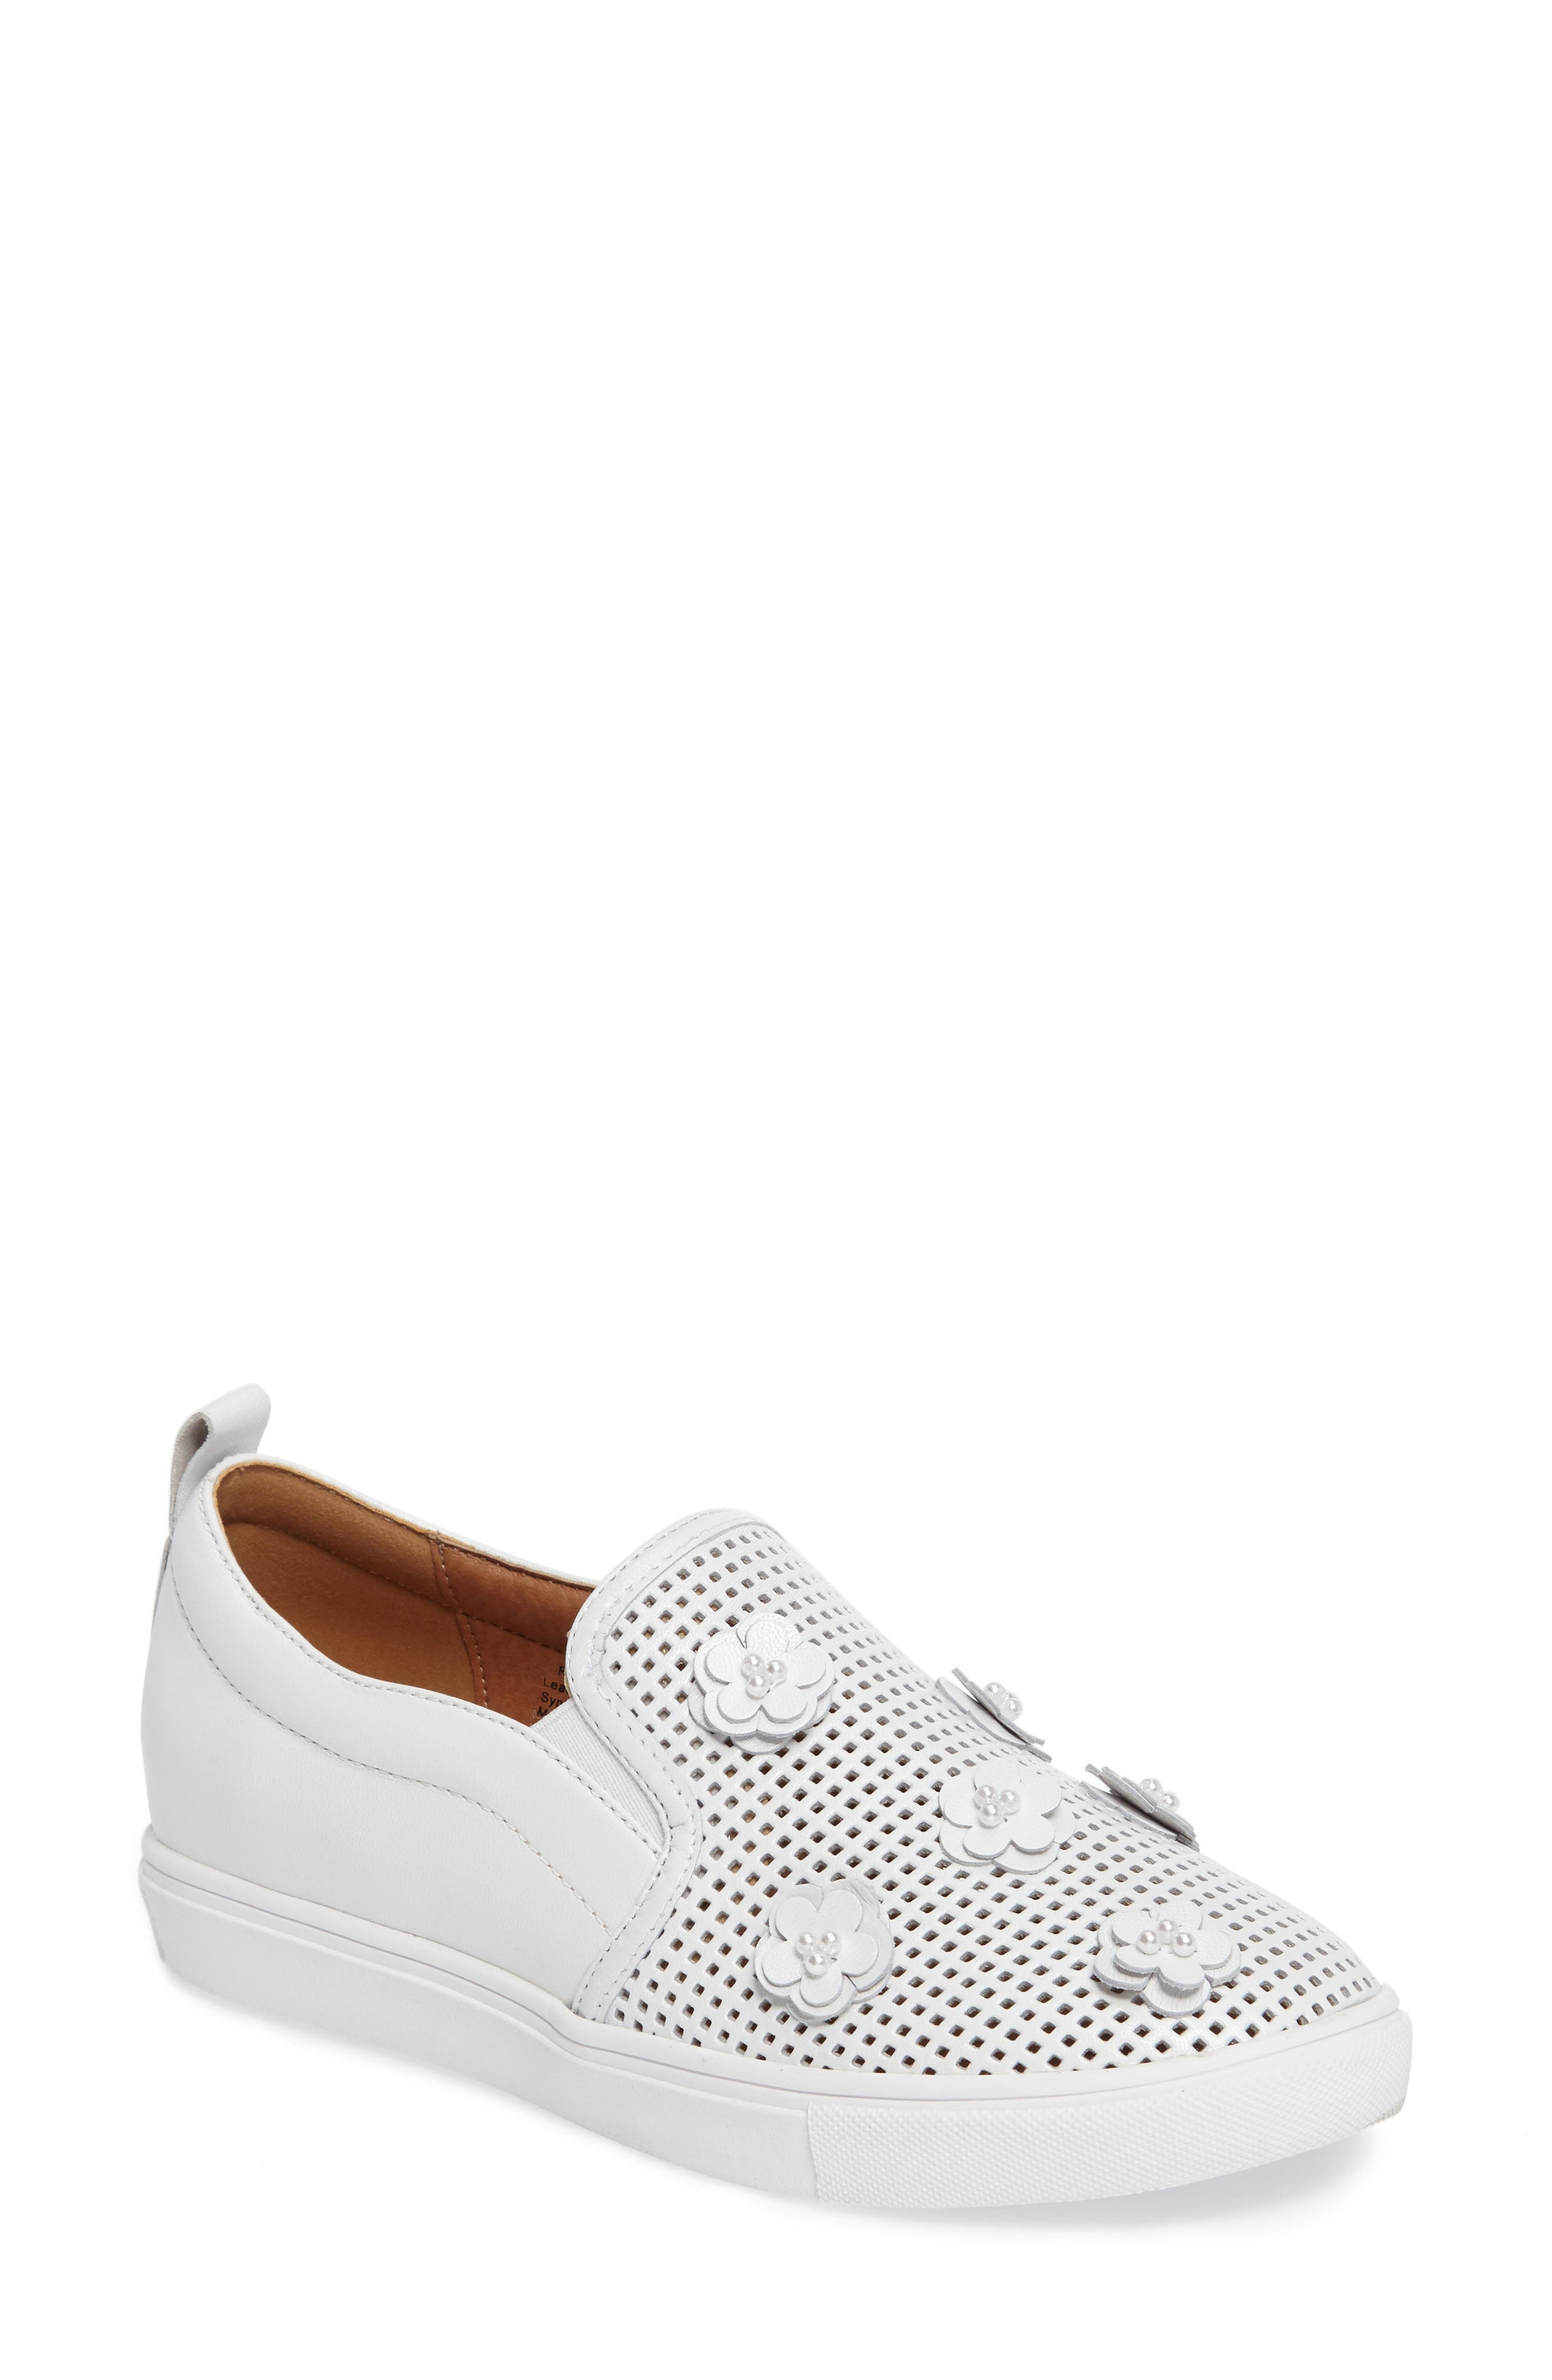 Eden Perforated Slip-On Sneaker,                         Main,                         color, 100